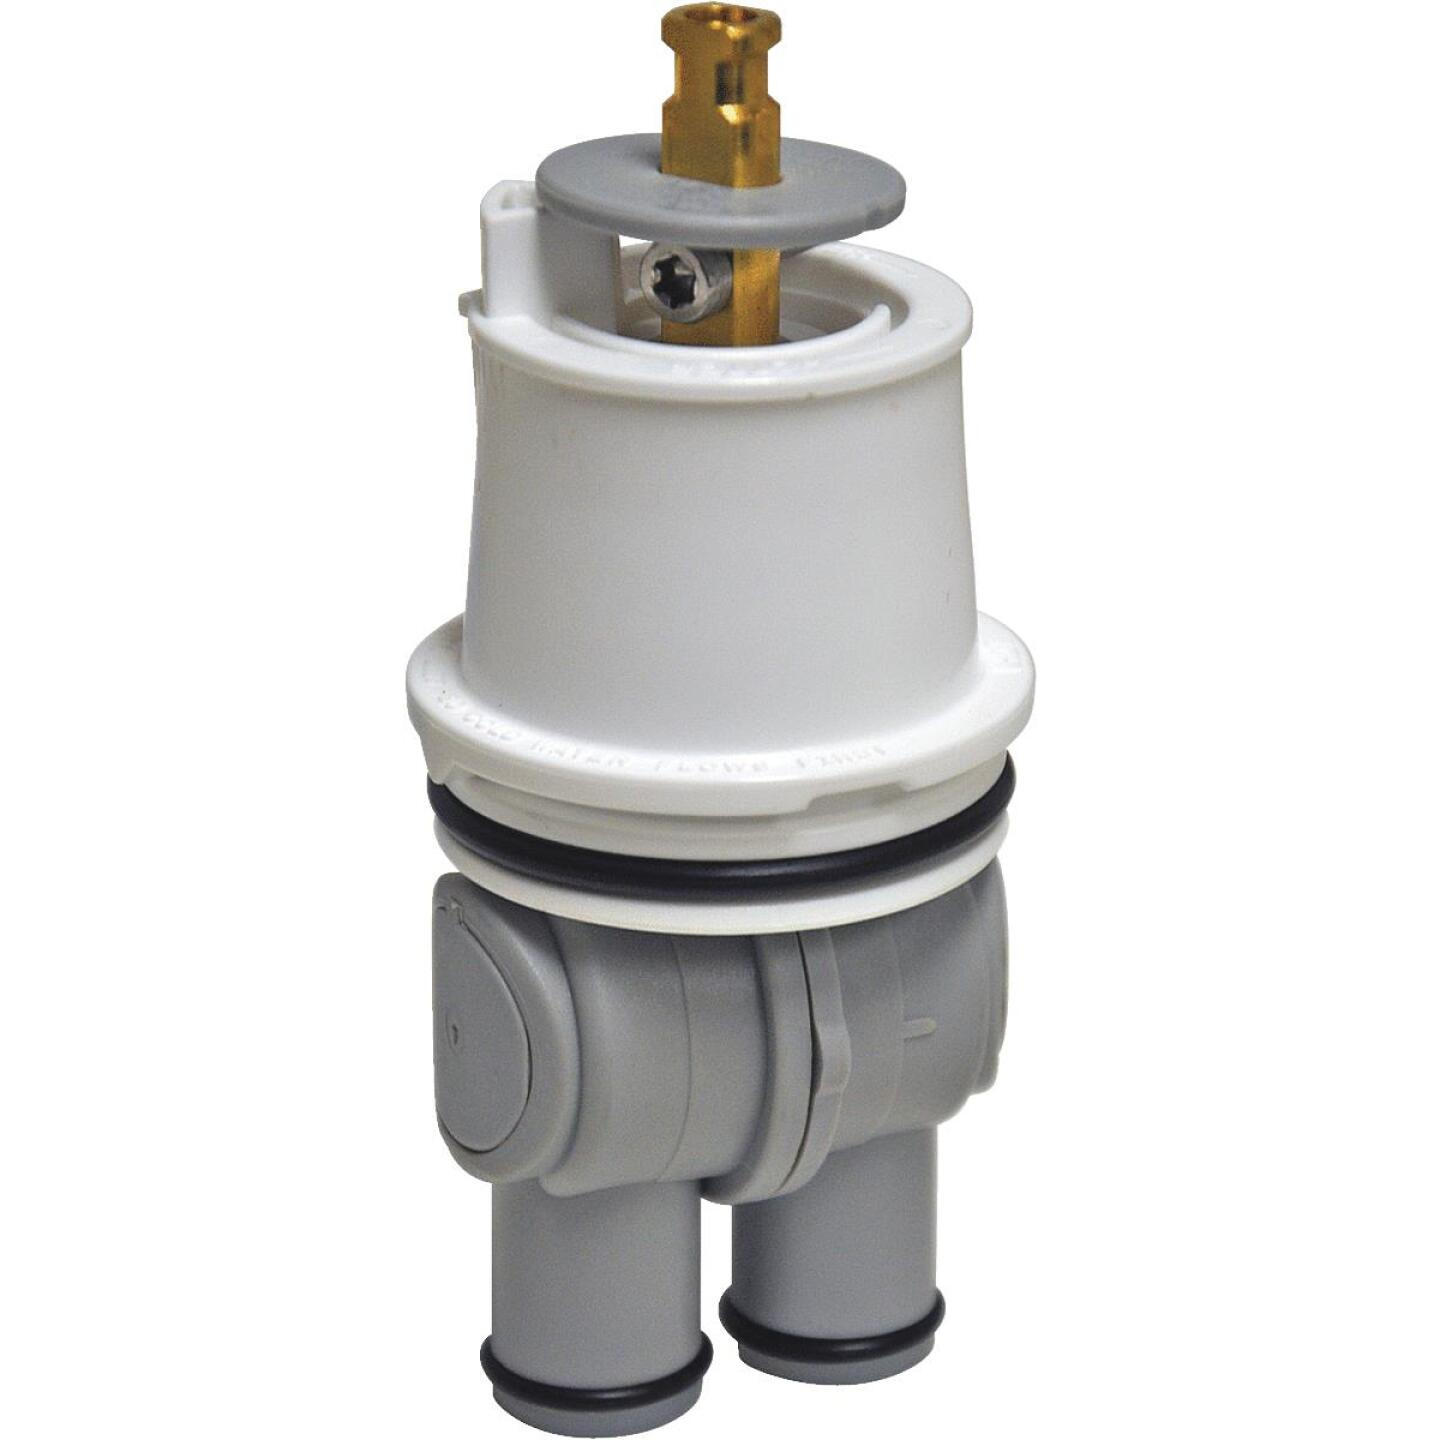 Danco Faucet Cartridge for Delta Monitor Image 1